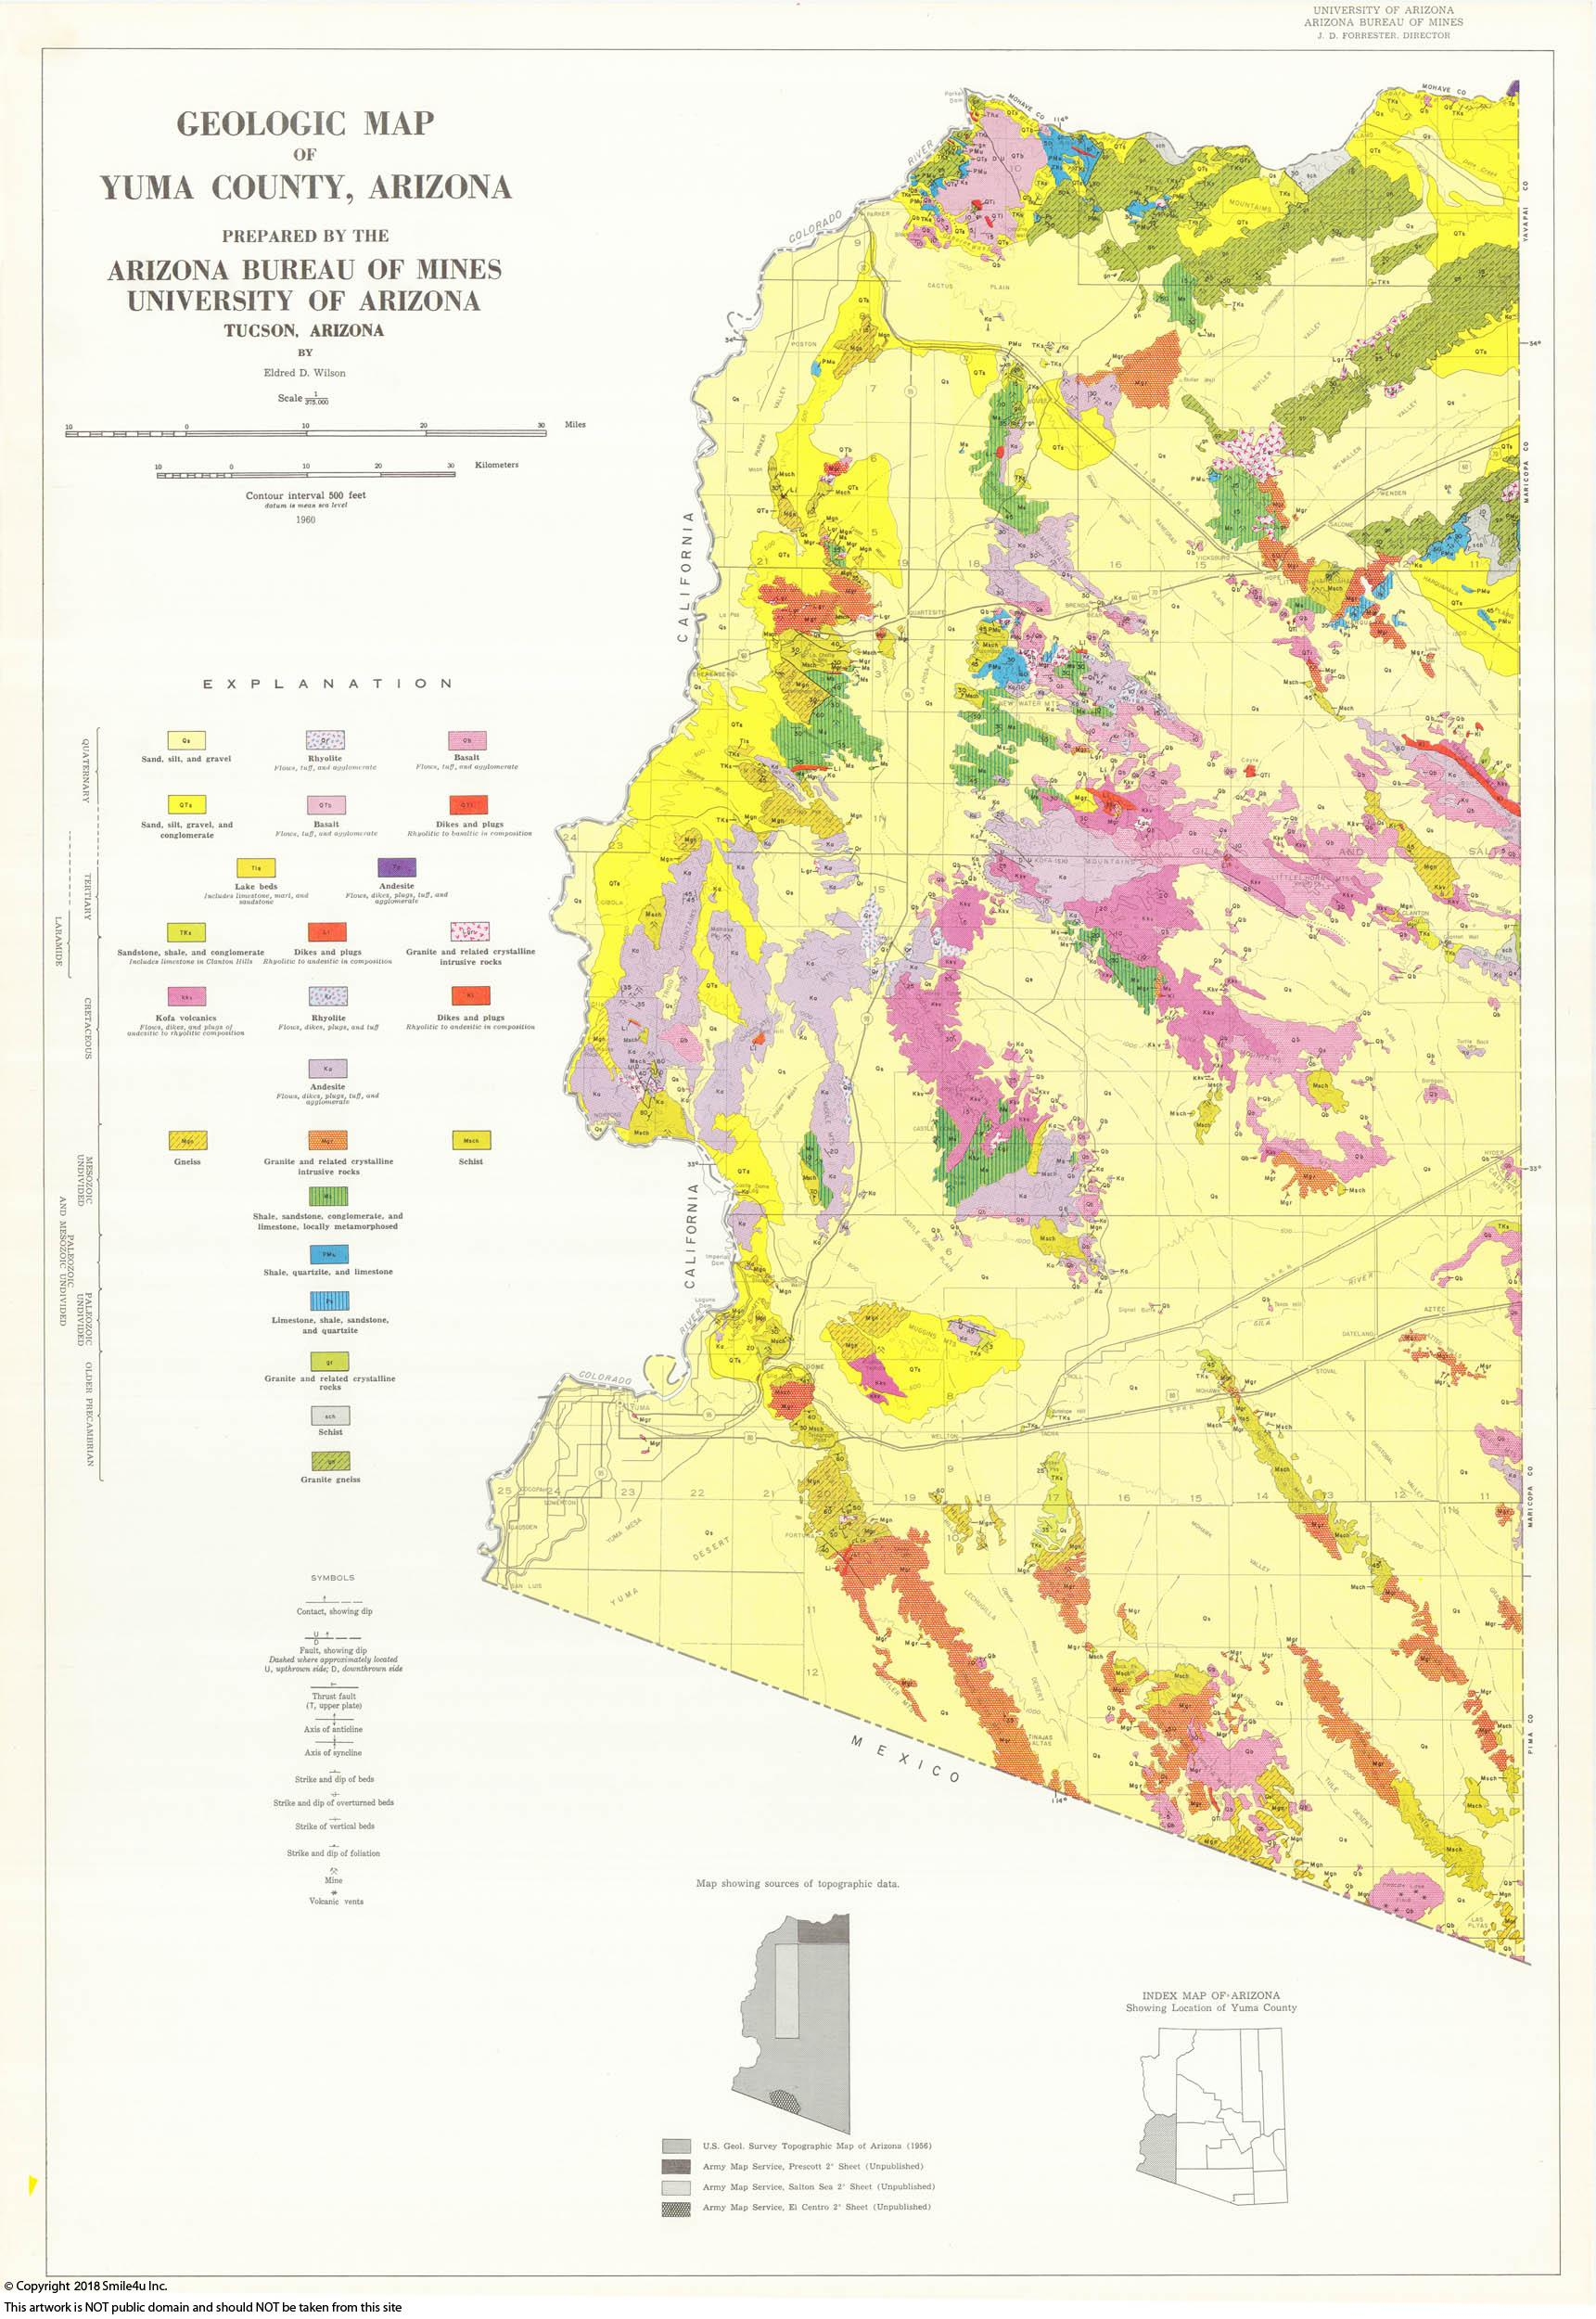 847518_watermarked_yumacounty_1960_geologicmap.jpg